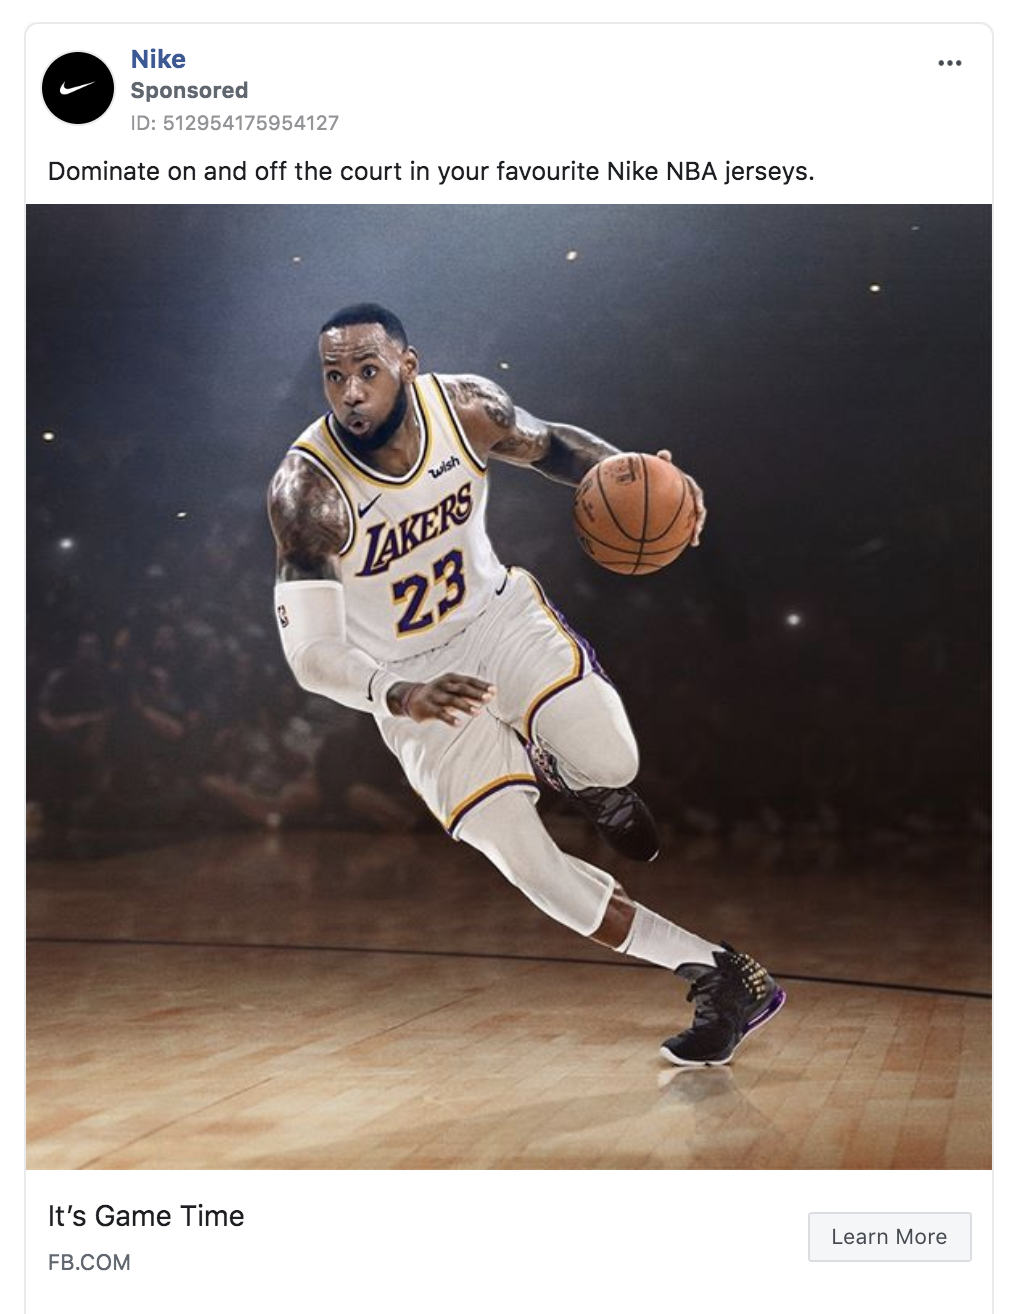 Nike Case Study How Nike Facebook Ads Are Used To Drive Sales Relevantly Facebook Marketing